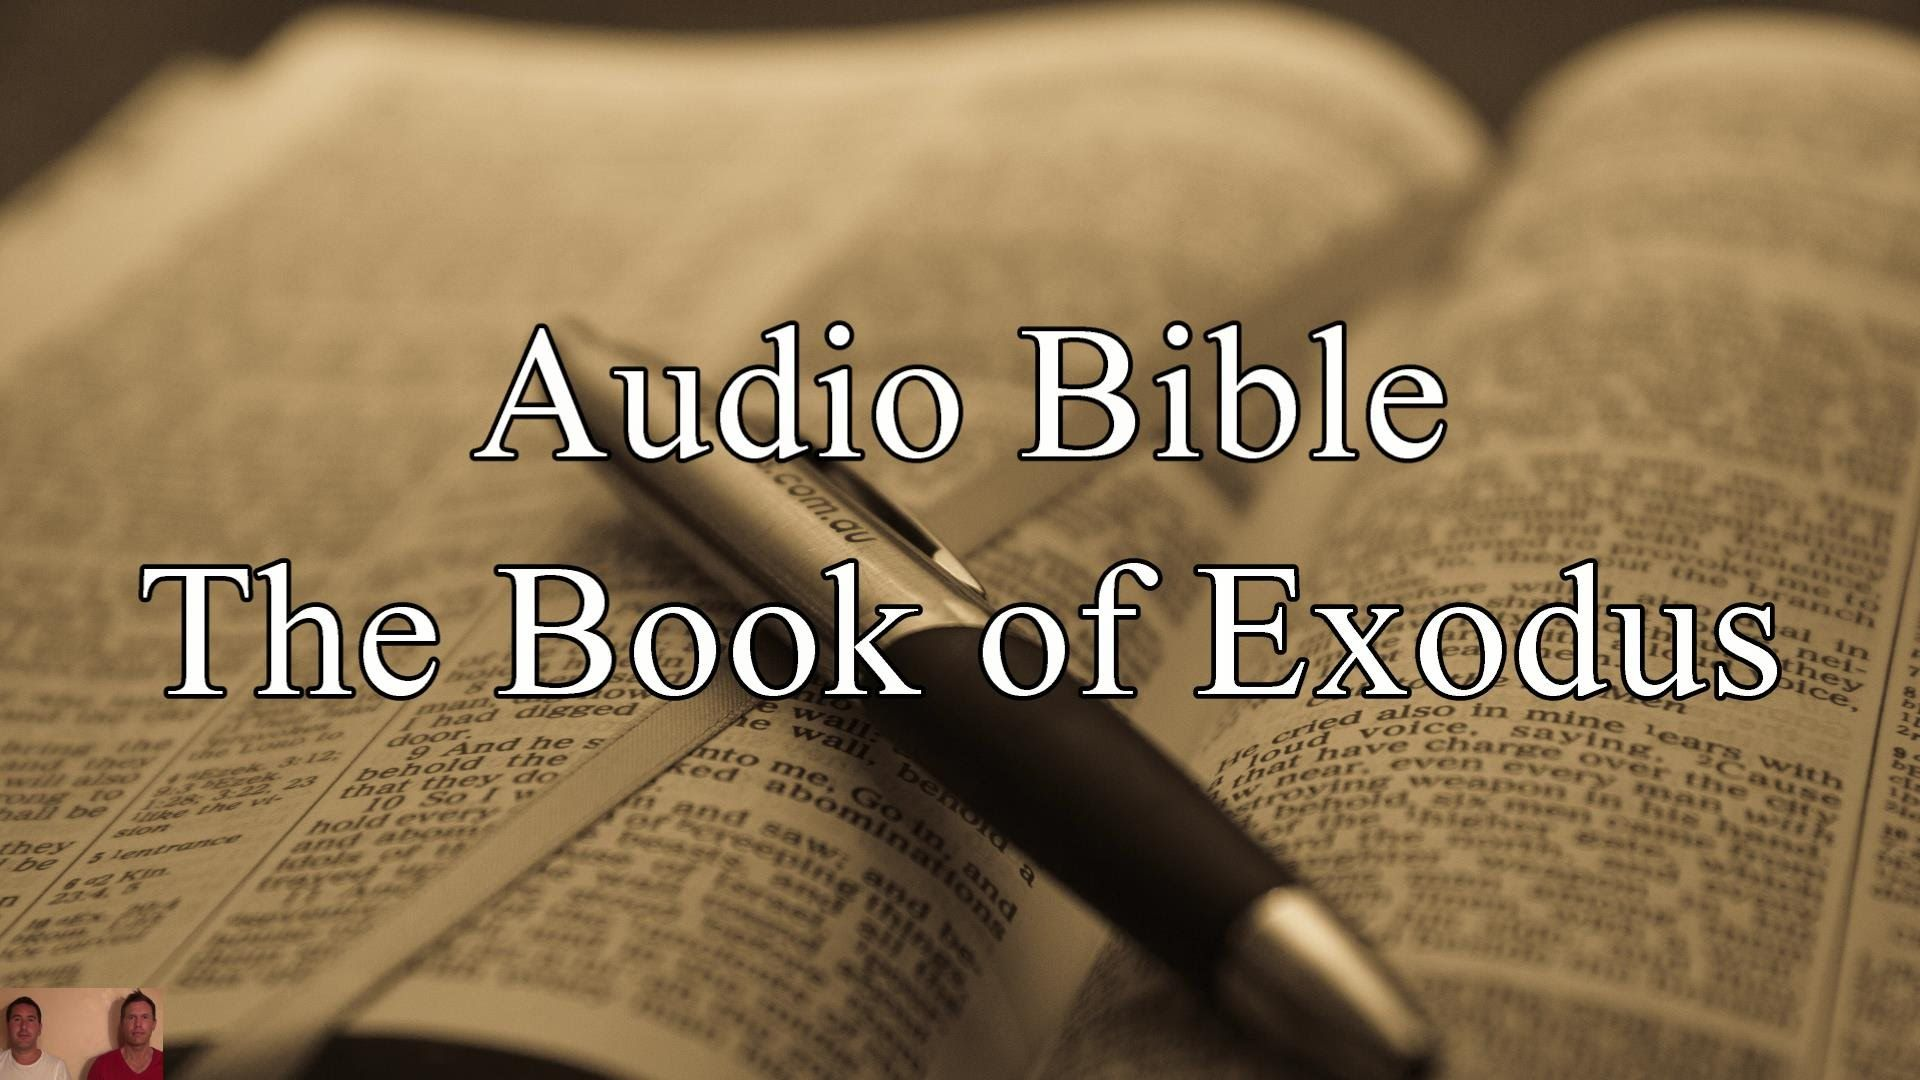 The Book of Exodus - KJV Audio Holy Bible - High Quality and